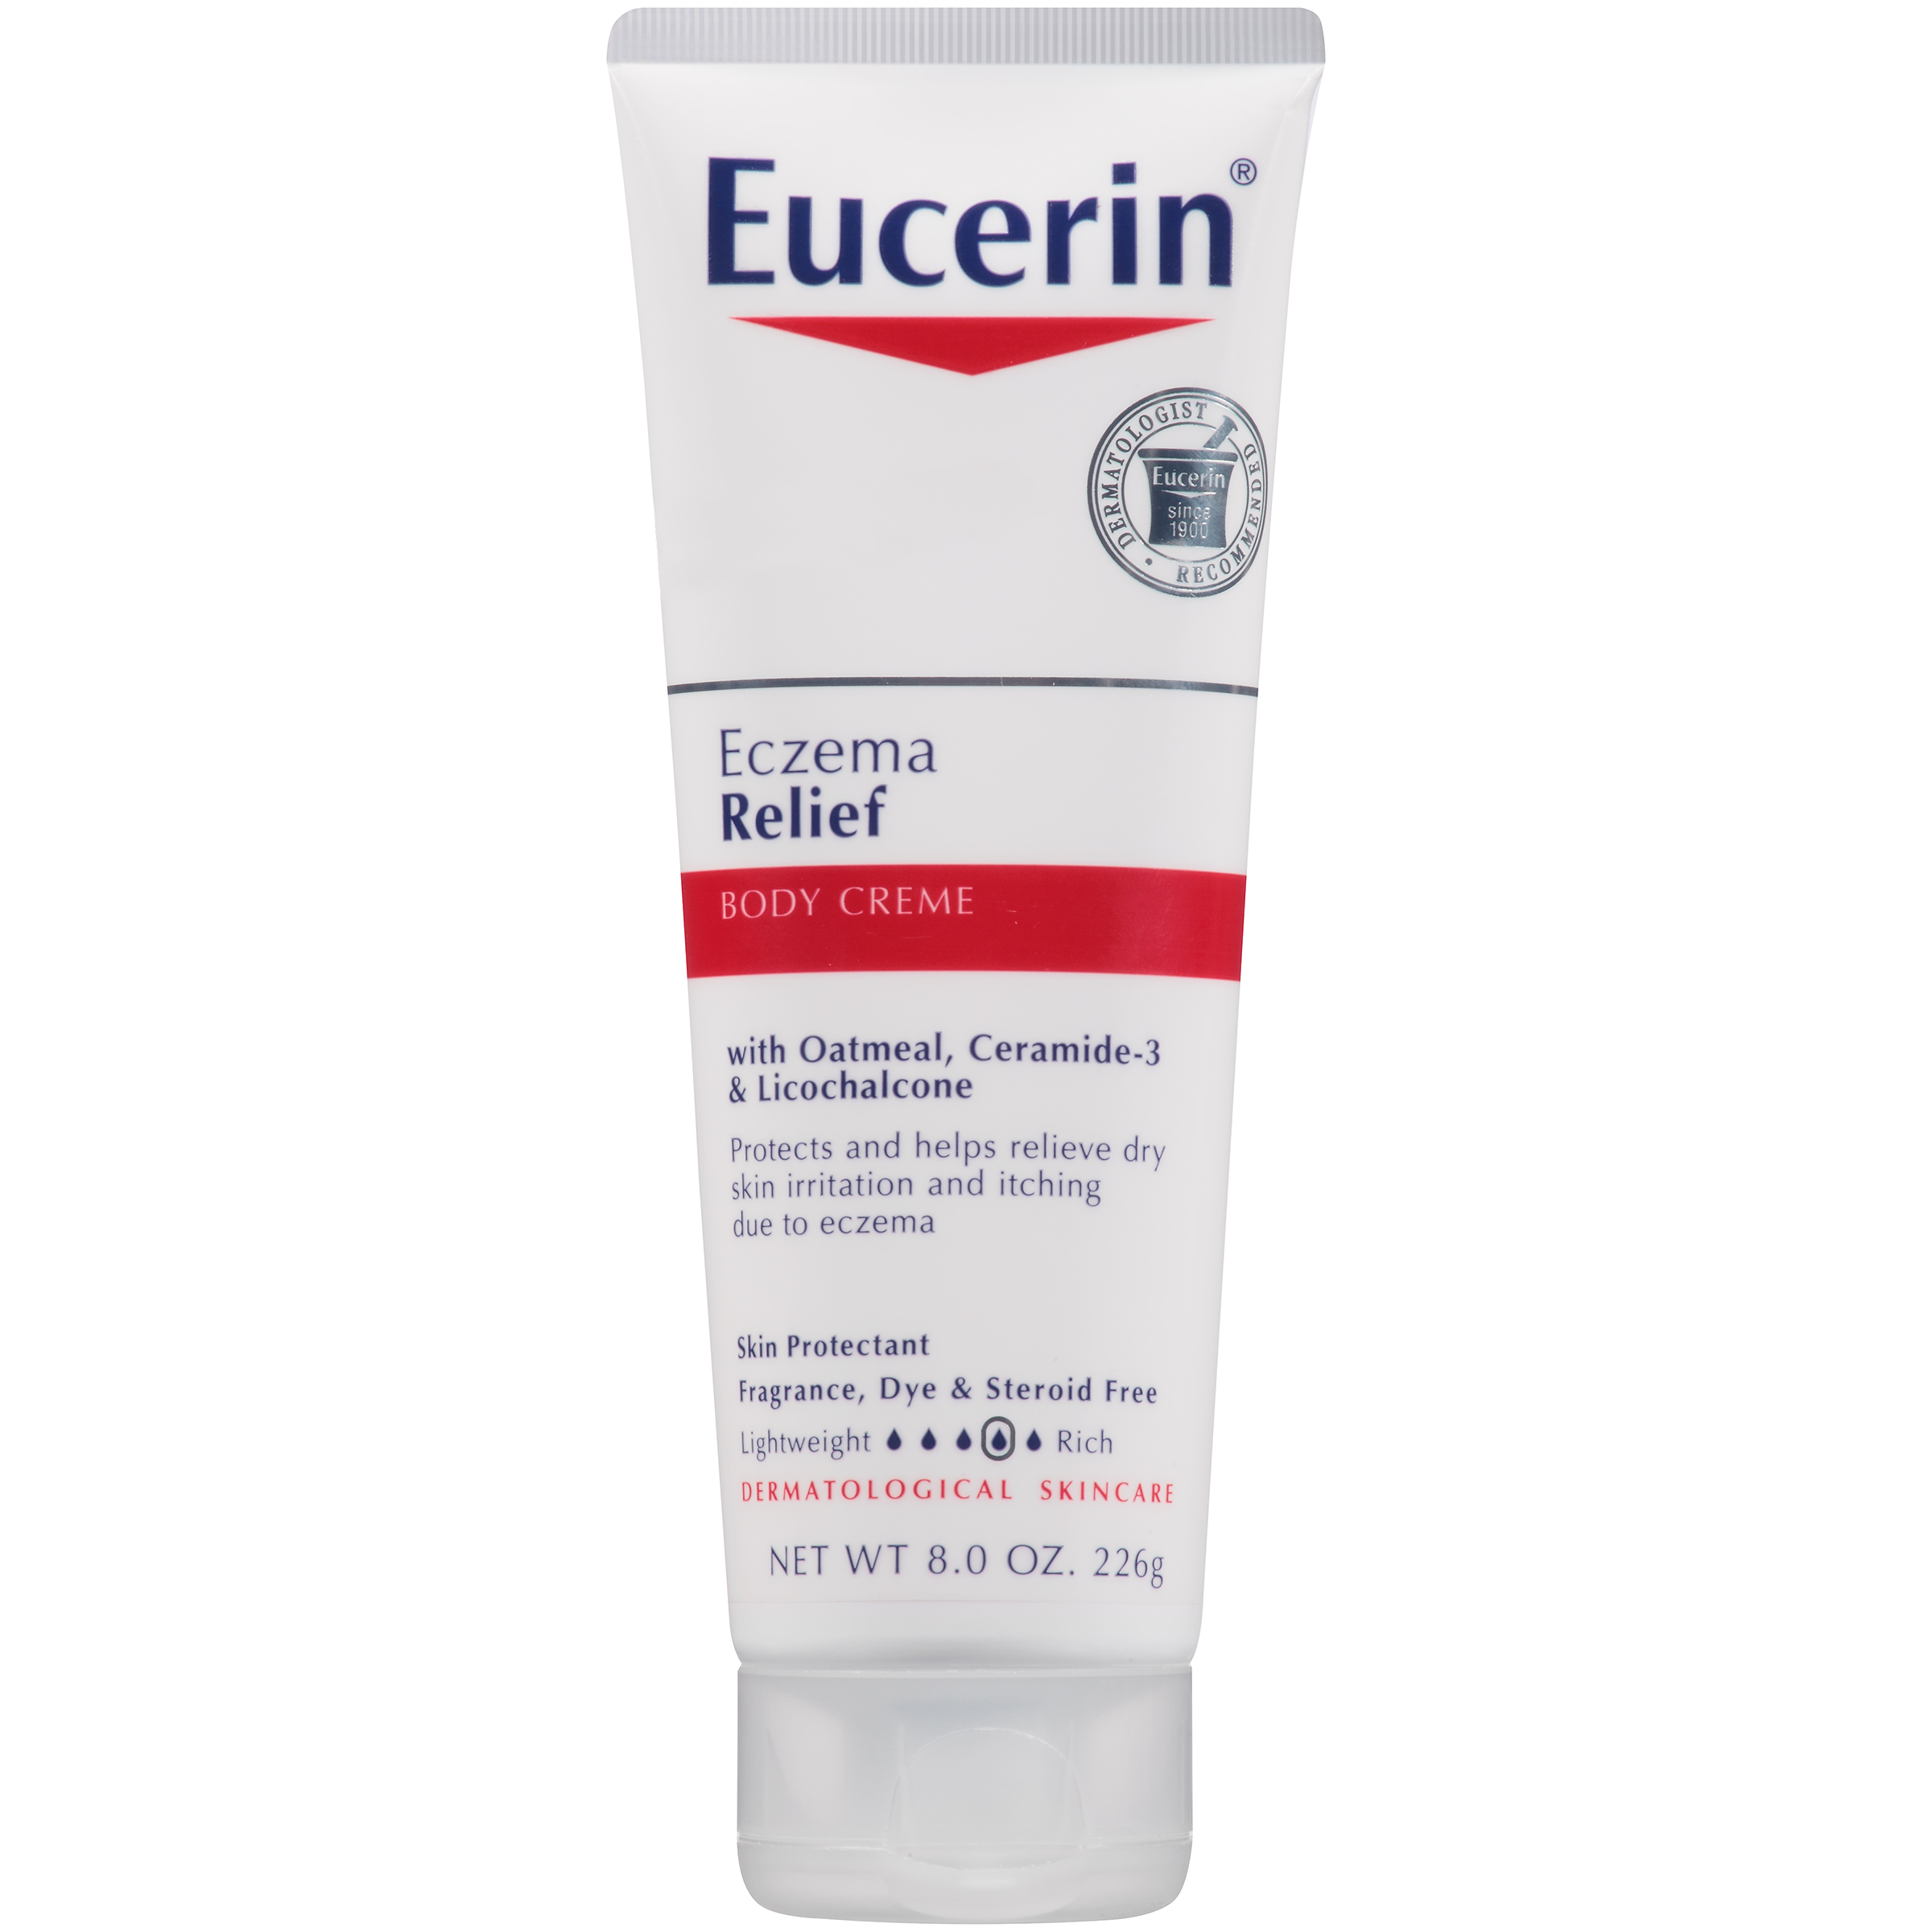 Eucerin Eczema Relief Body Creme (Adult) - 8 oz